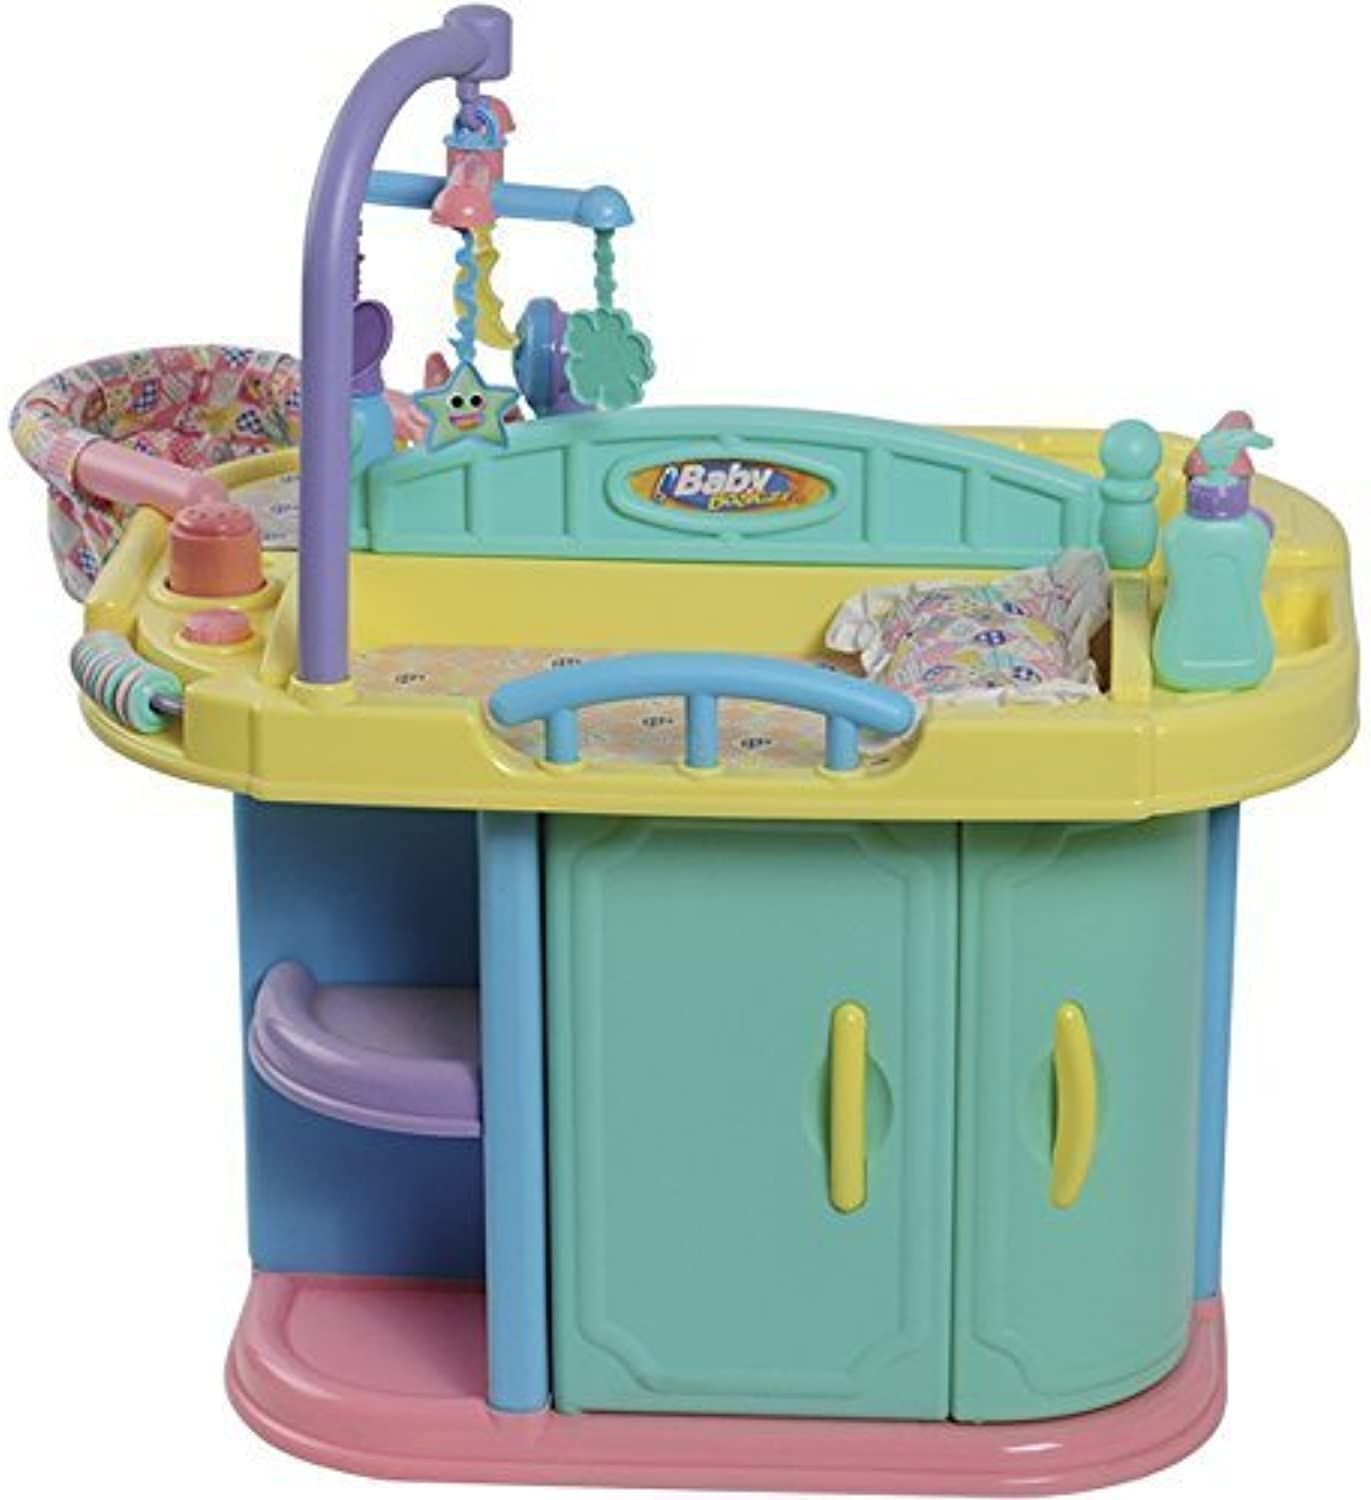 CP Toys Baby Doll Changing Table and Care Center with Accessories by Constructive Playthings